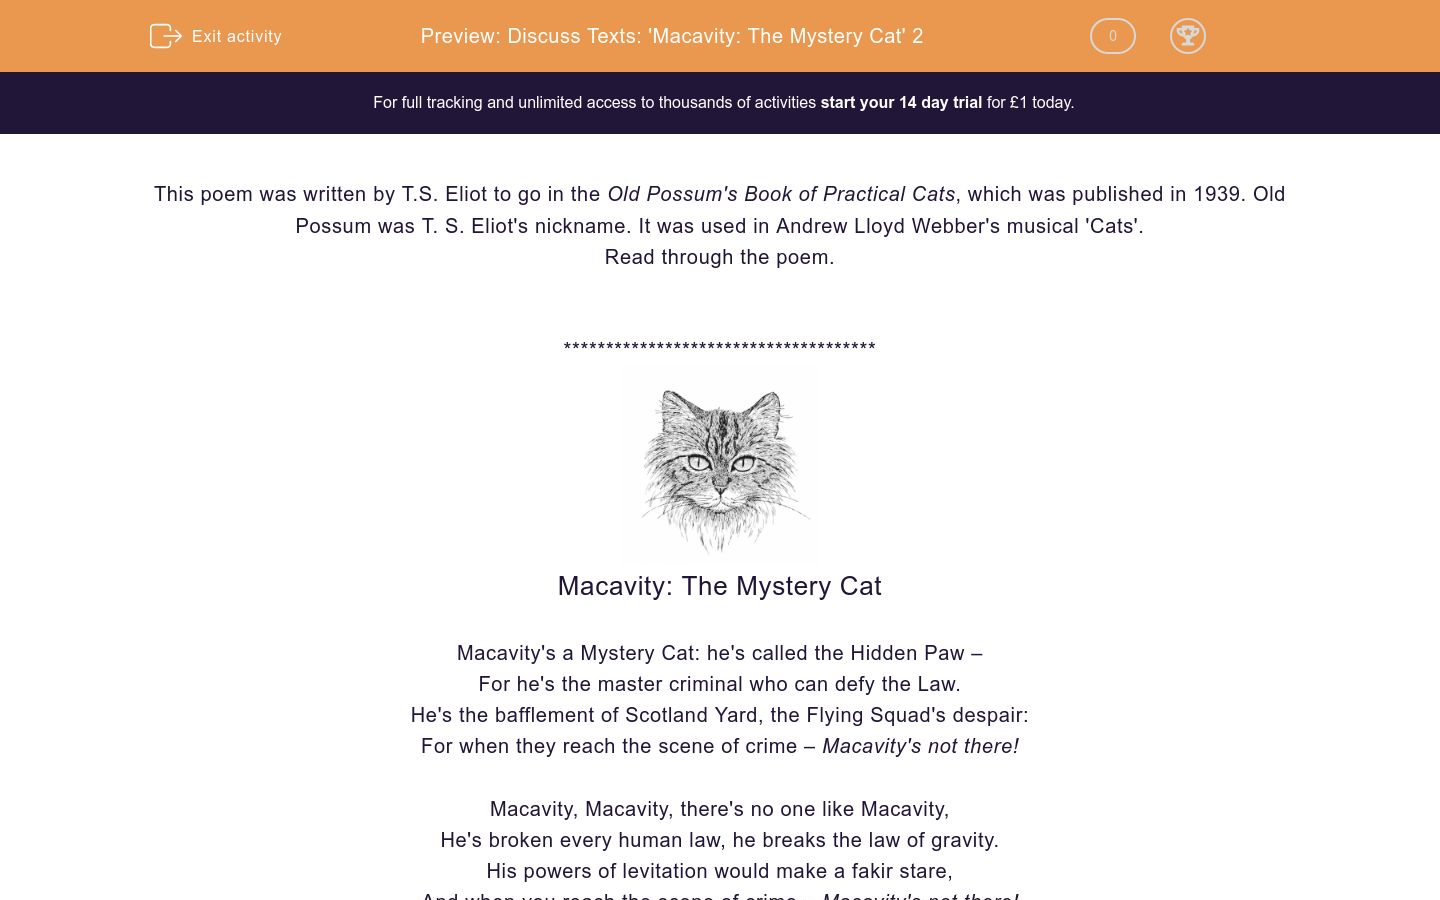 'Discuss Texts: 'Macavity: The Mystery Cat' 2' worksheet